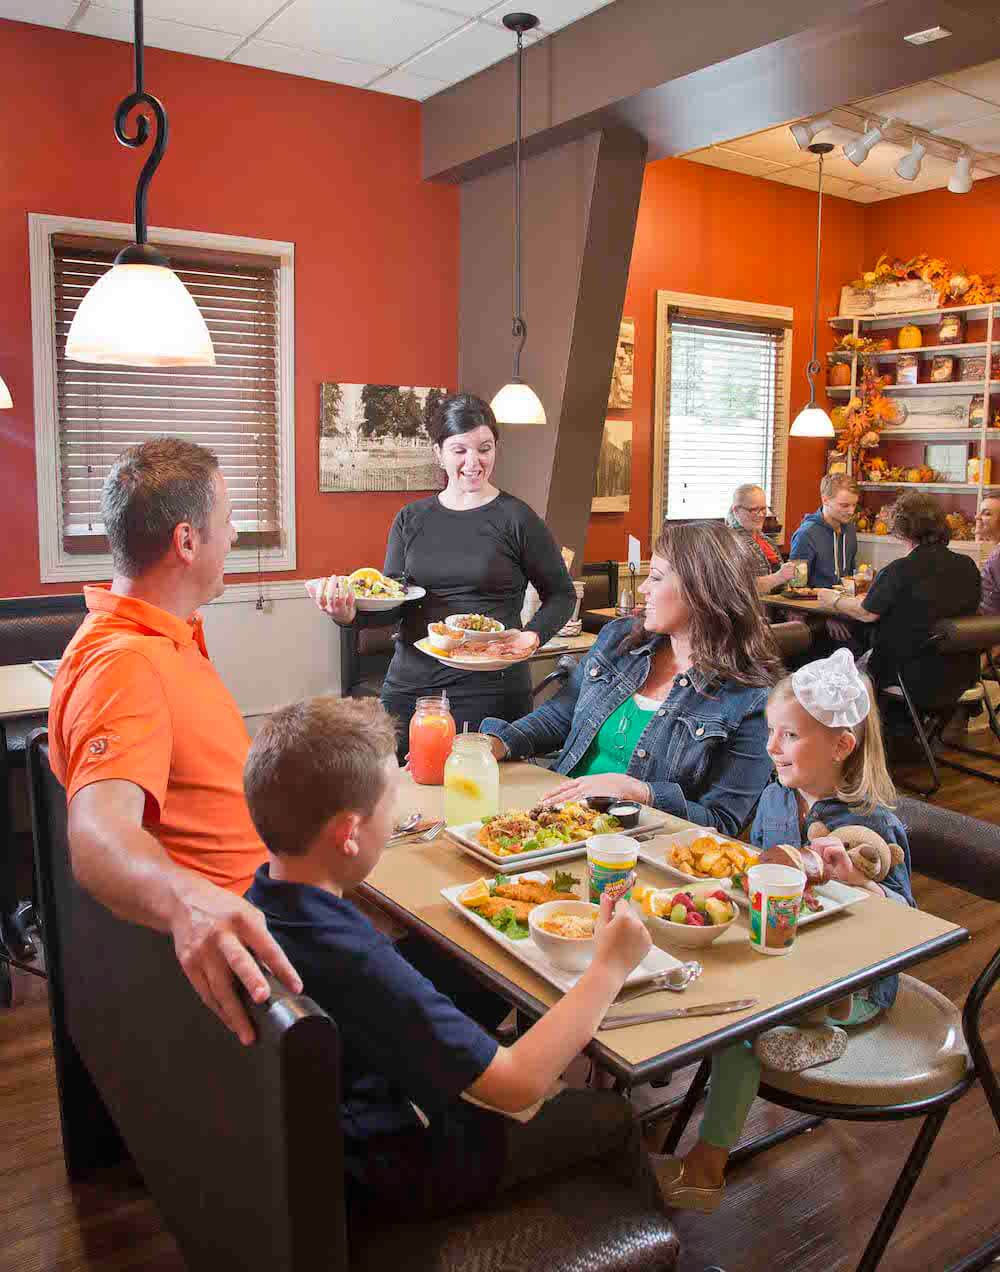 Pure & Simple Restaurant, Gaither Family Resources, Alexandria, Ind. Credit: Anderson/Madison County Visitors Bureau